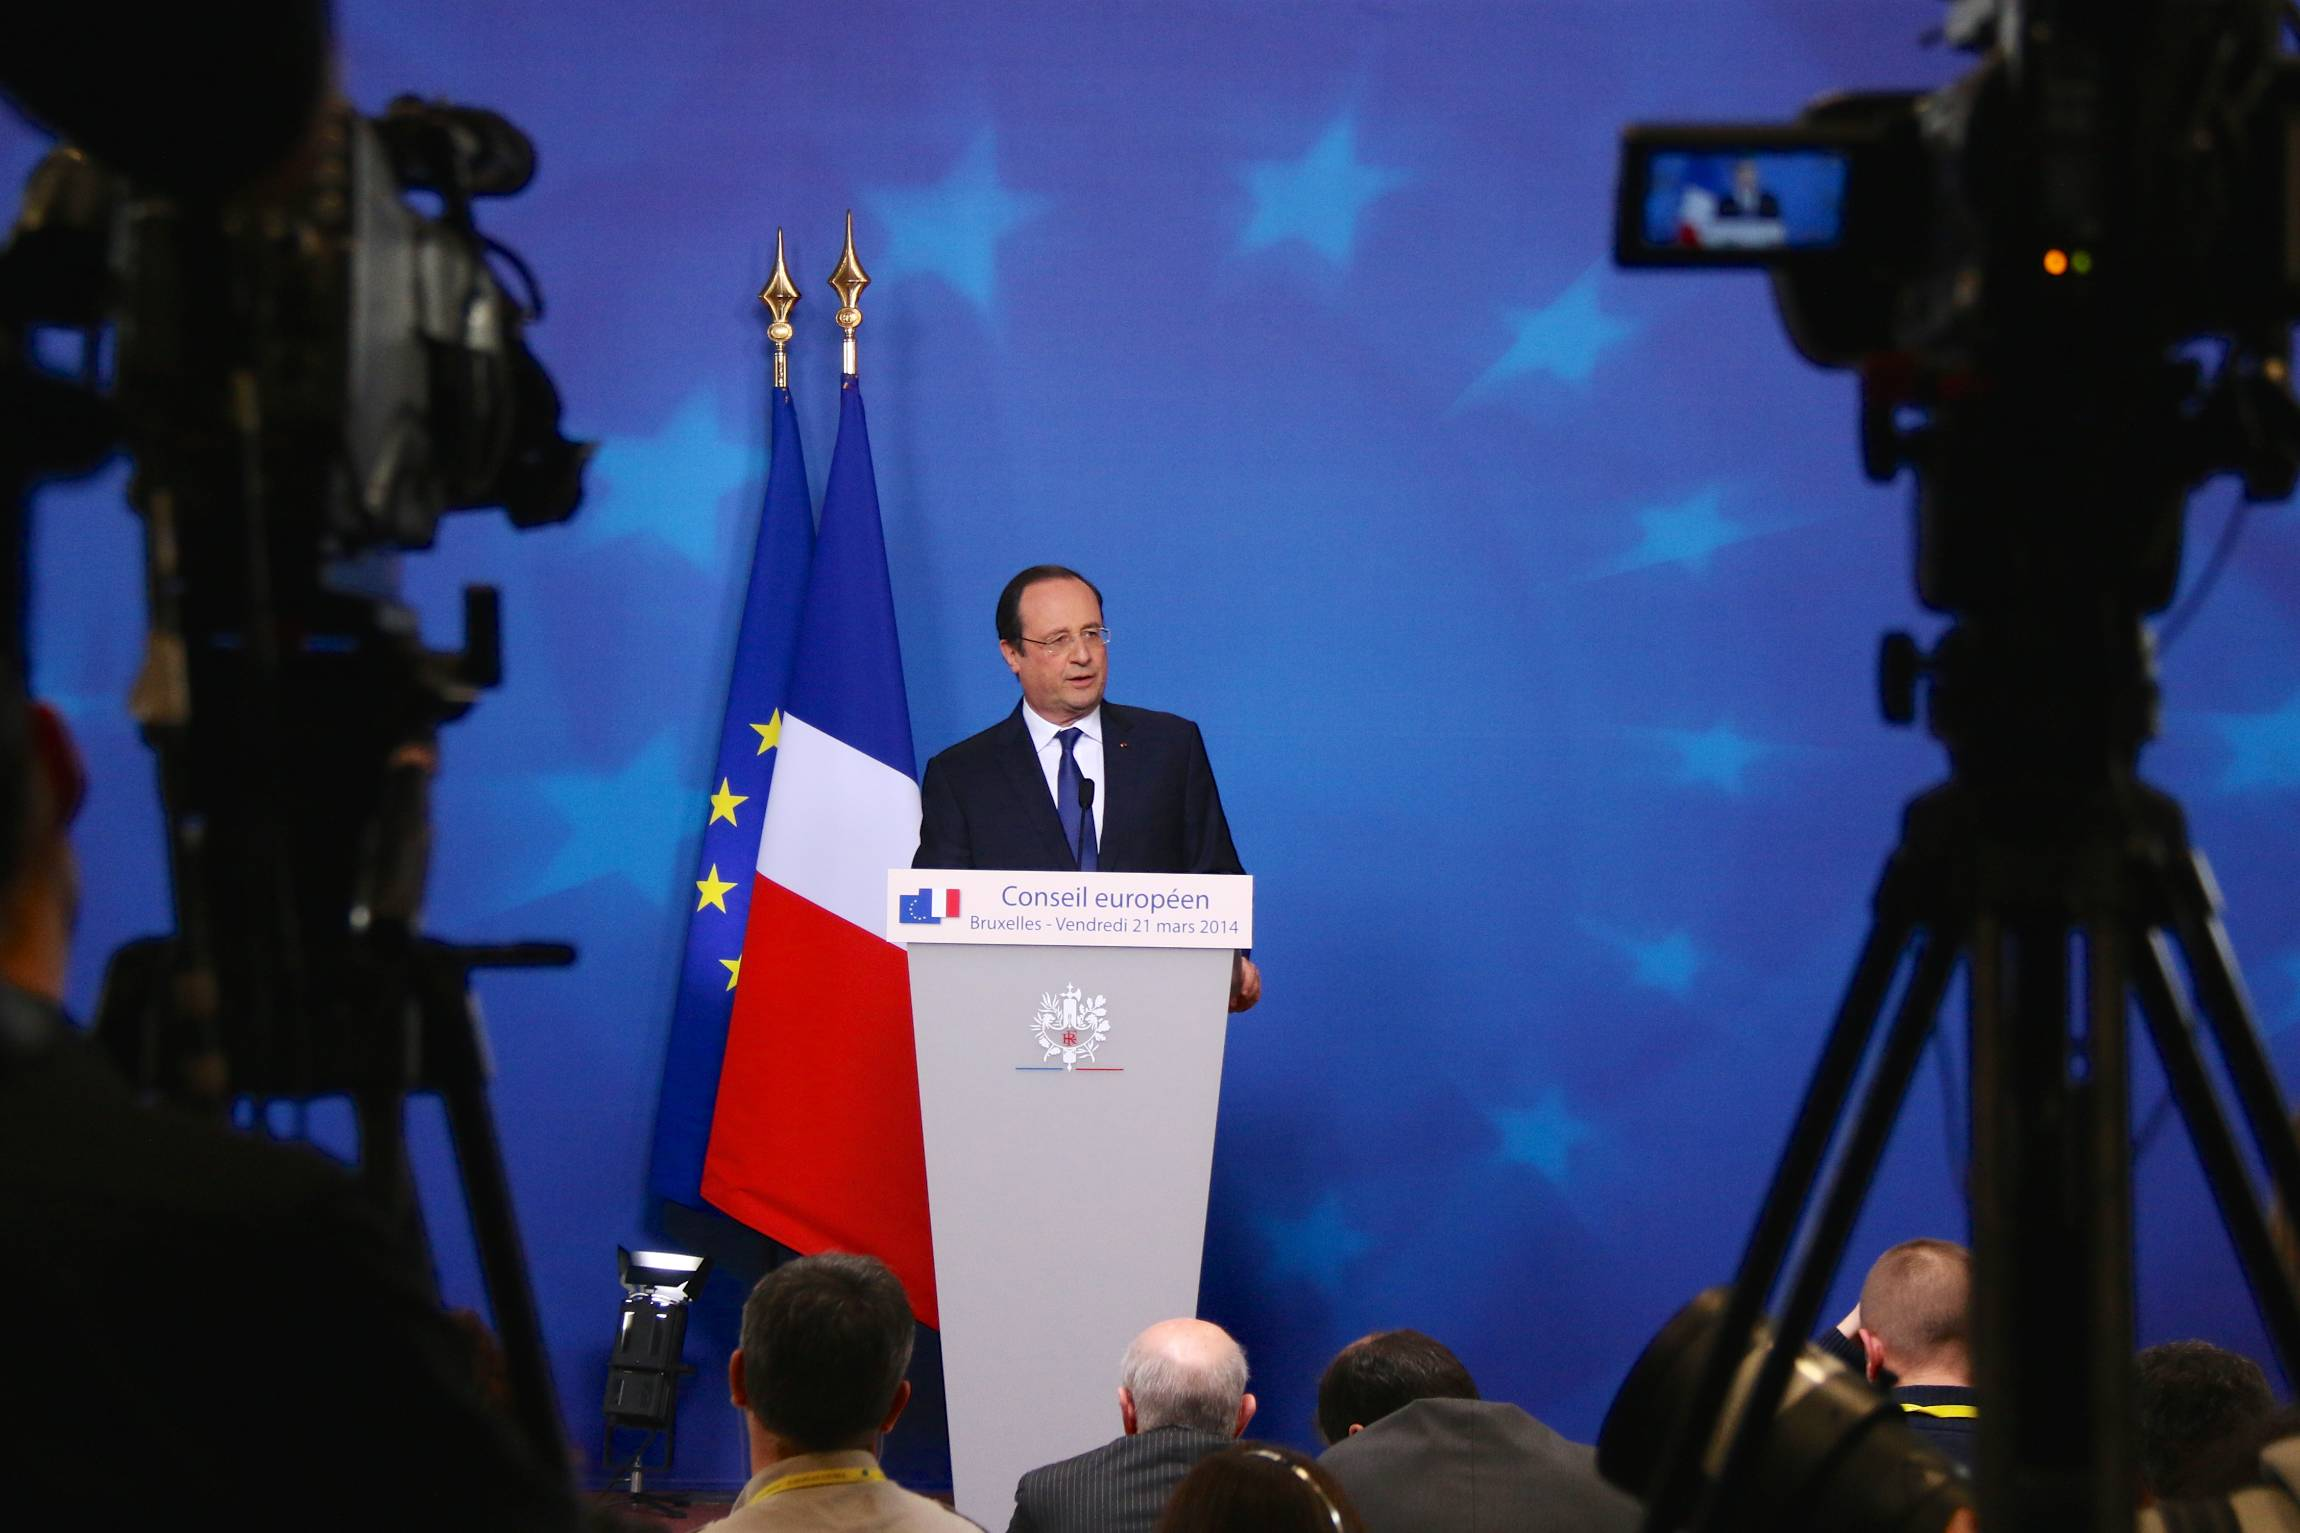 Francois Hollande, President of France, speaks after the European Council in Brussels, March 21, 2015.